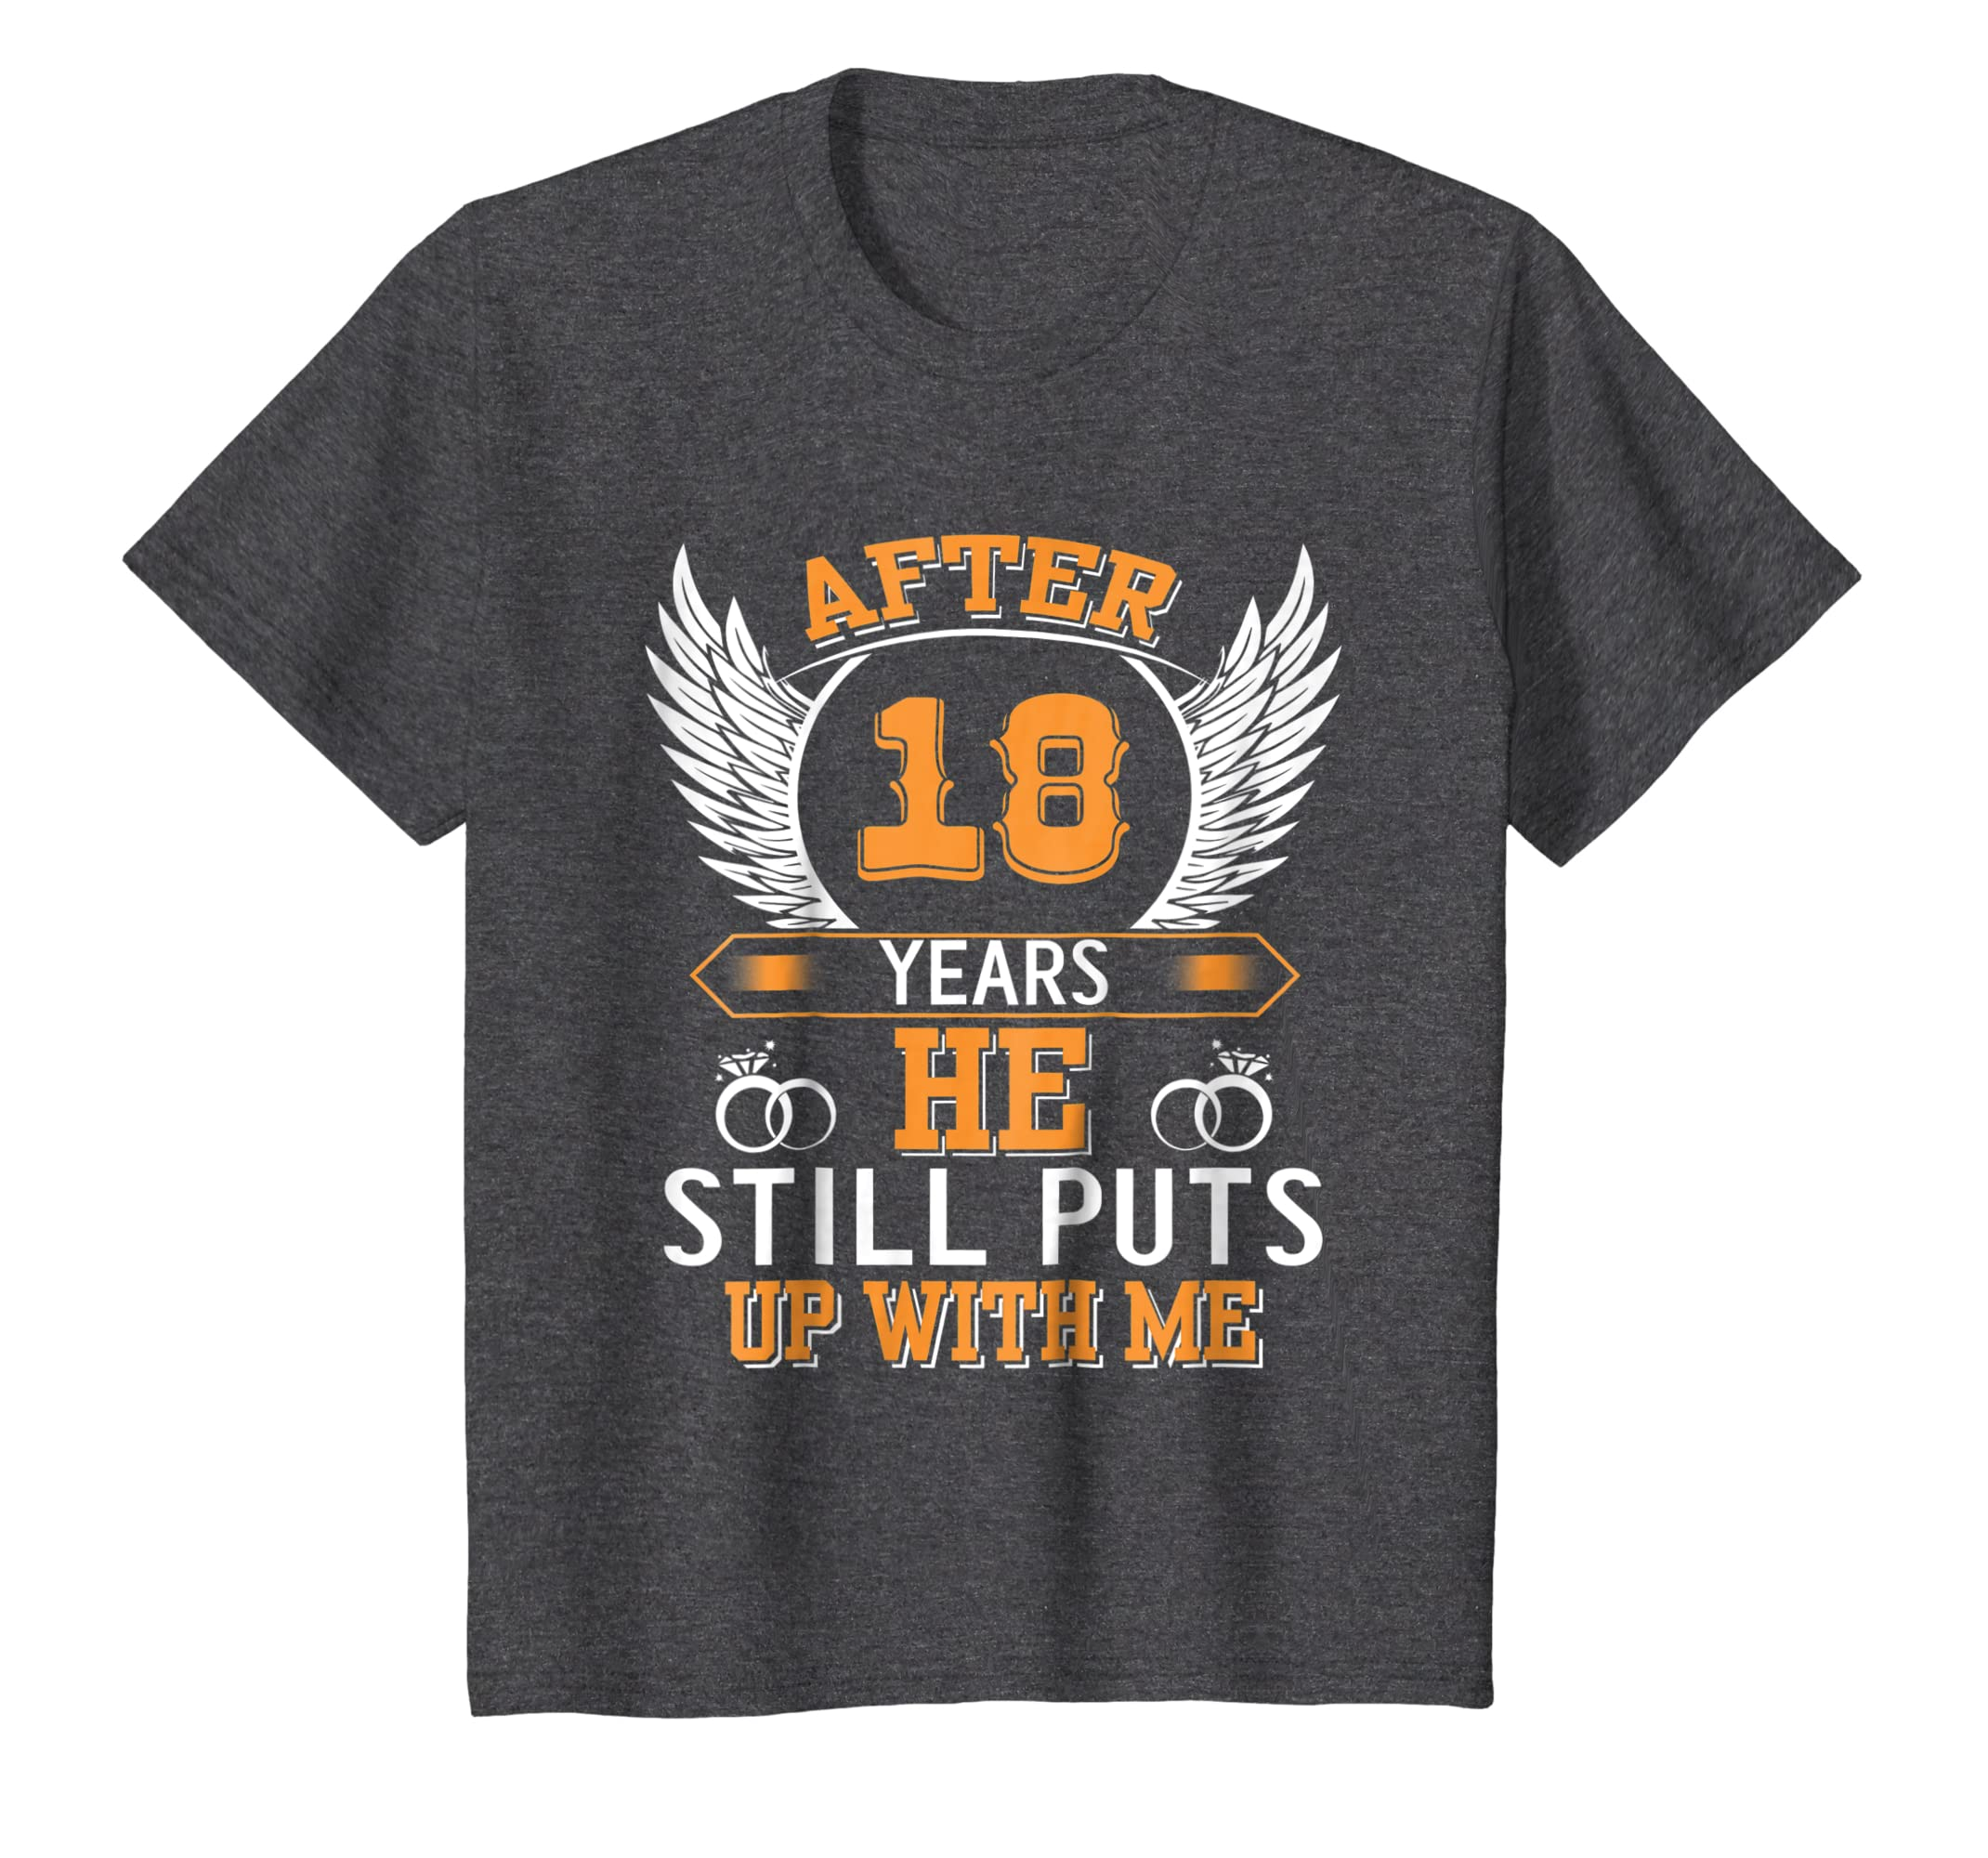 Amazon.com  18th Anniversary Gifts For Her Women. Best T-Shirt For Wife   Clothing 676fd5b5c2